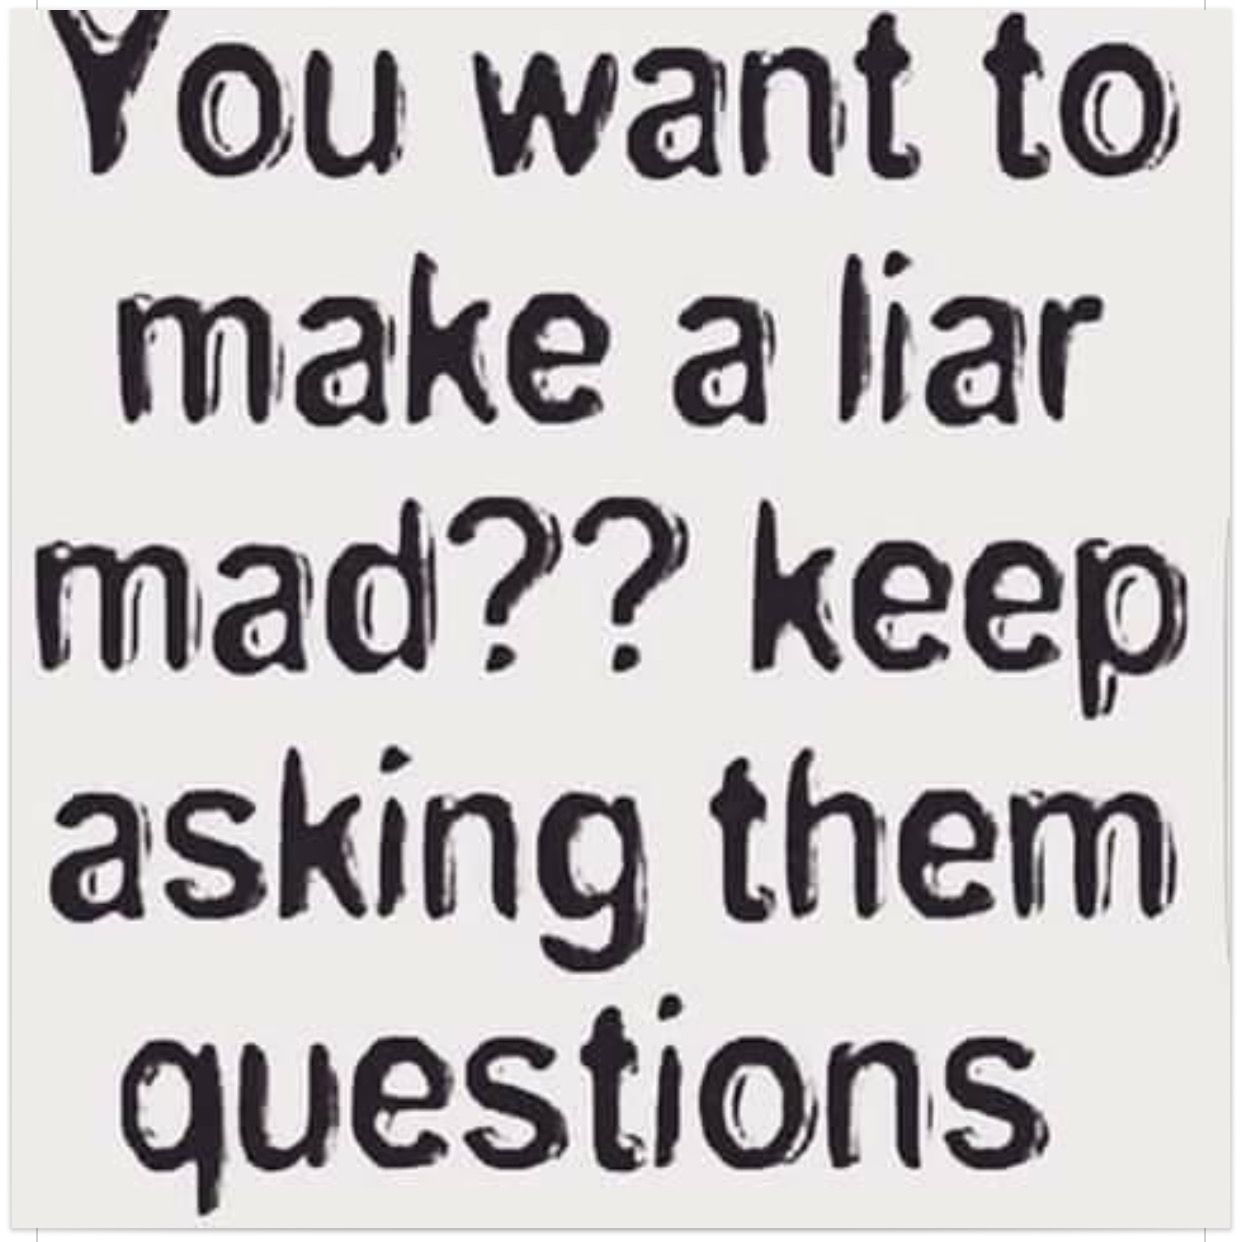 Pin By Lyon On Sarcasm Suits Me Cheater Quotes Karma Quotes Liar Quotes